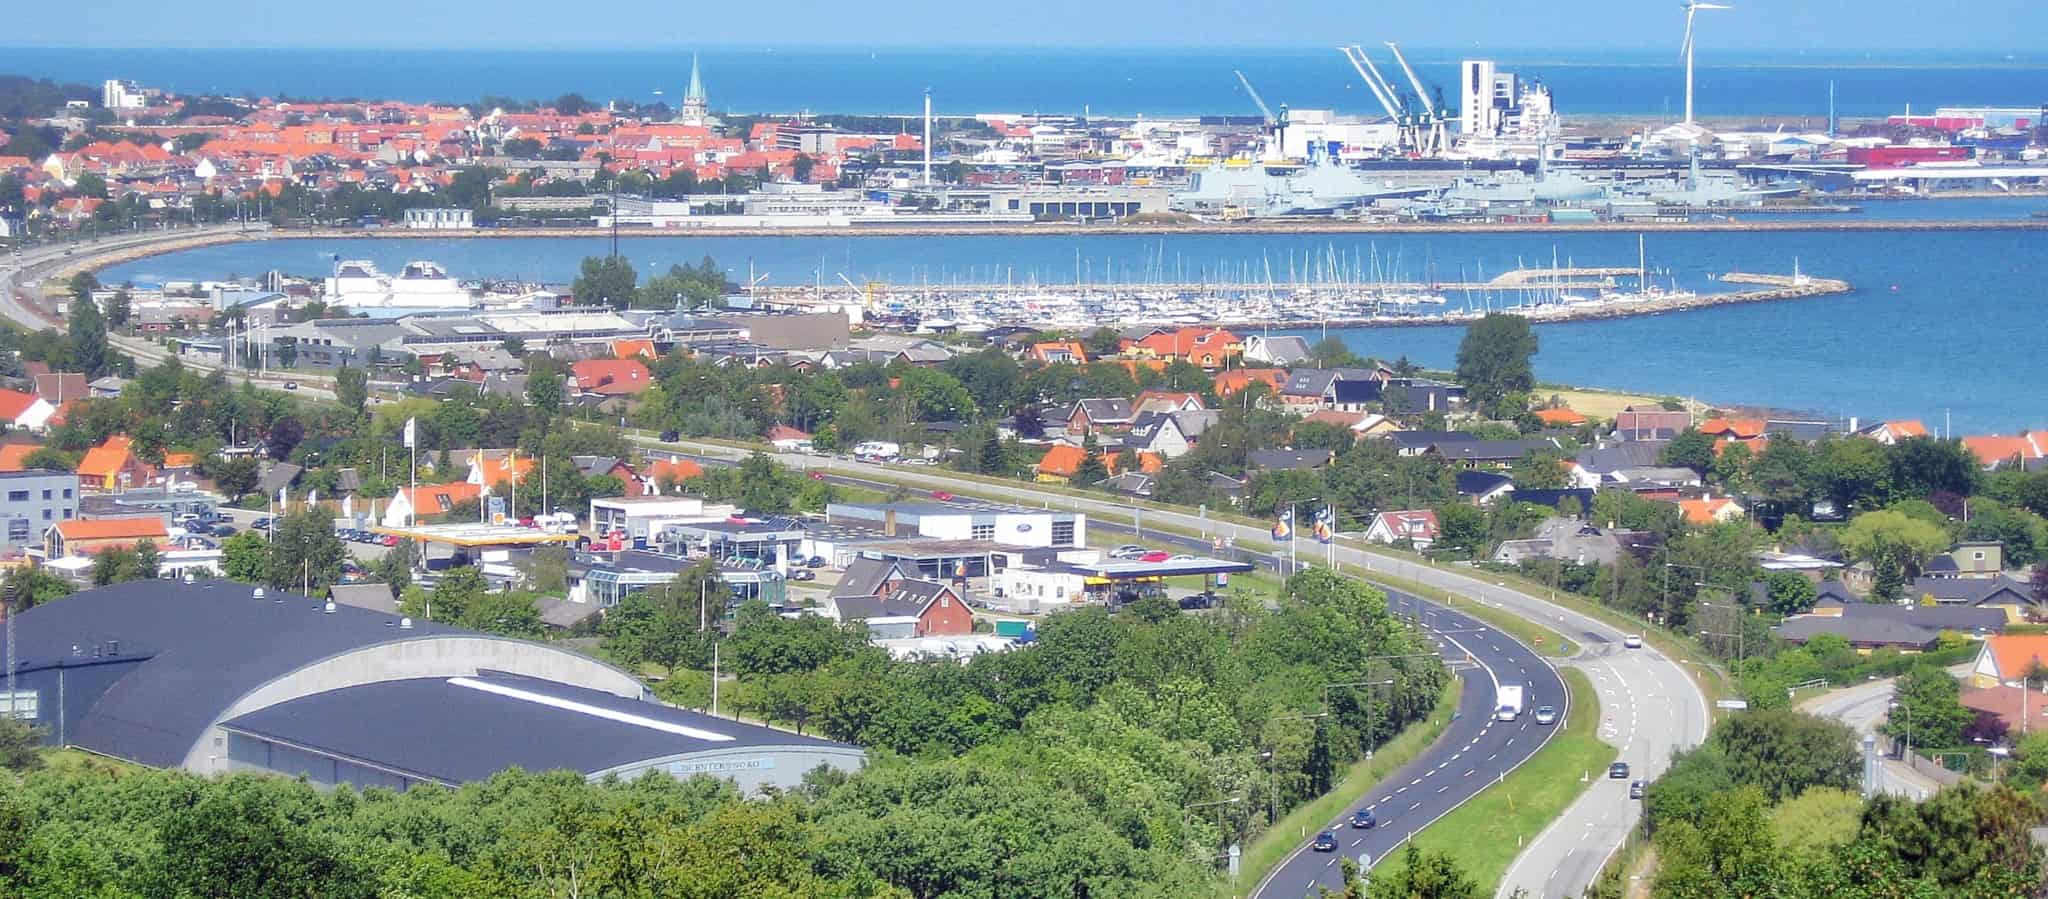 Frederikshavn is a small harbor town in the north of Denmark. The port is an important hub for ferry services throughout Scandinavia.